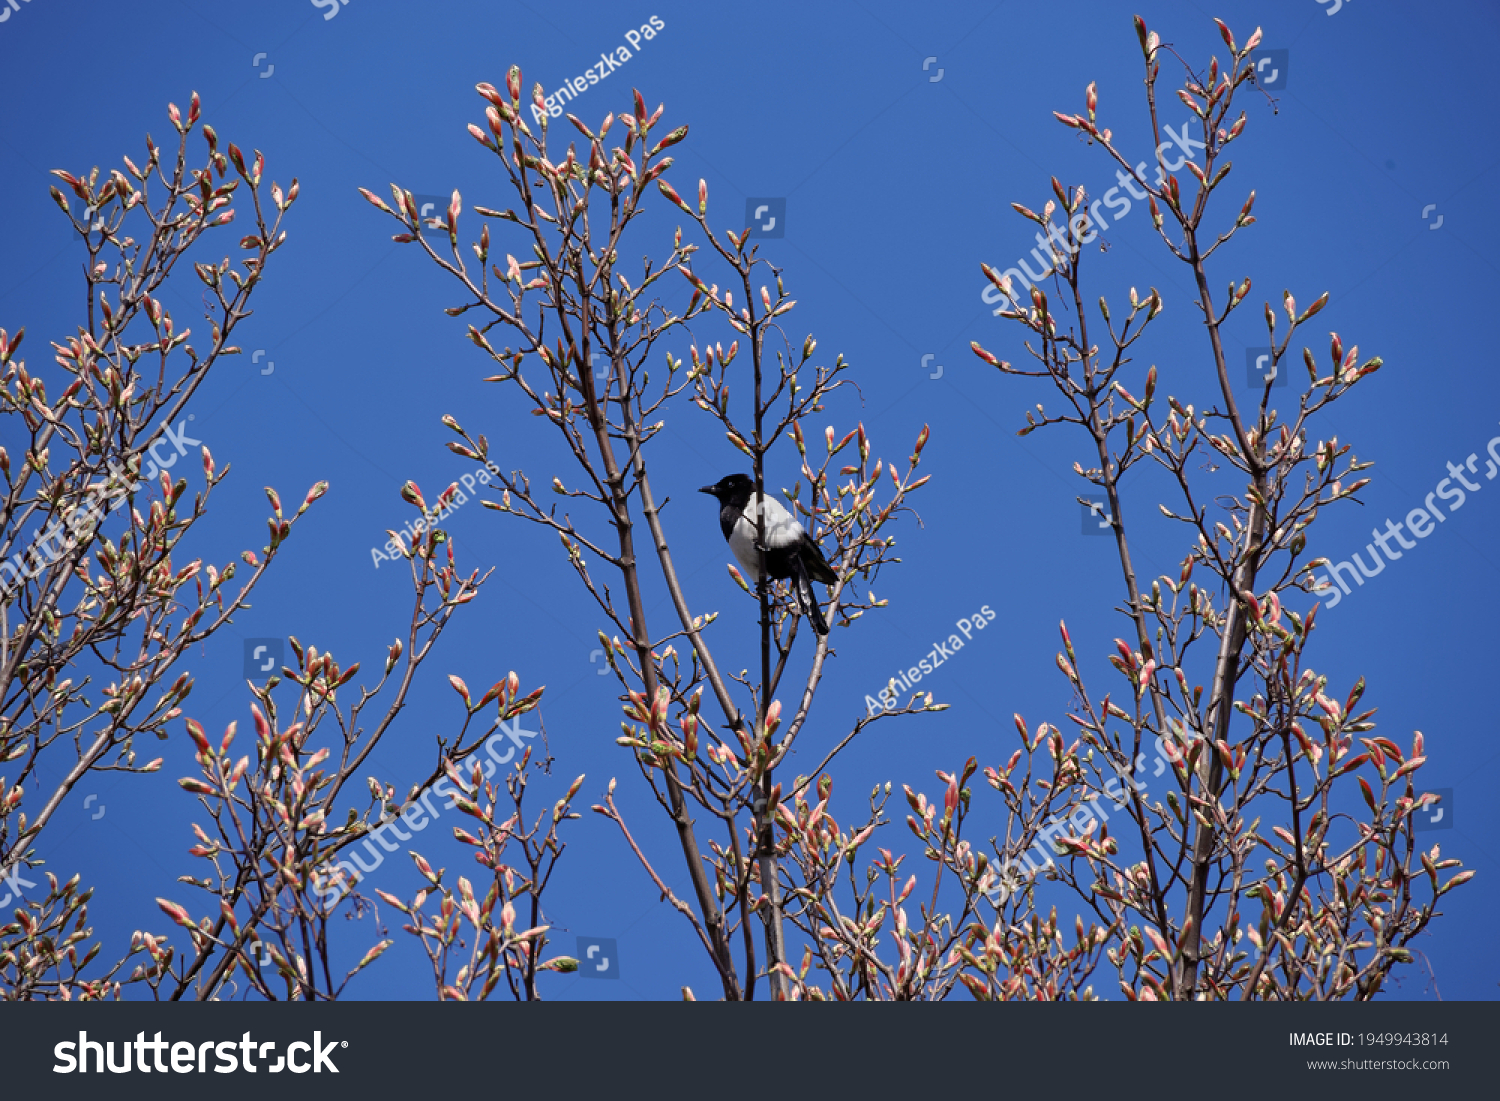 stock-photo-magpie-on-a-tree-with-buds-u